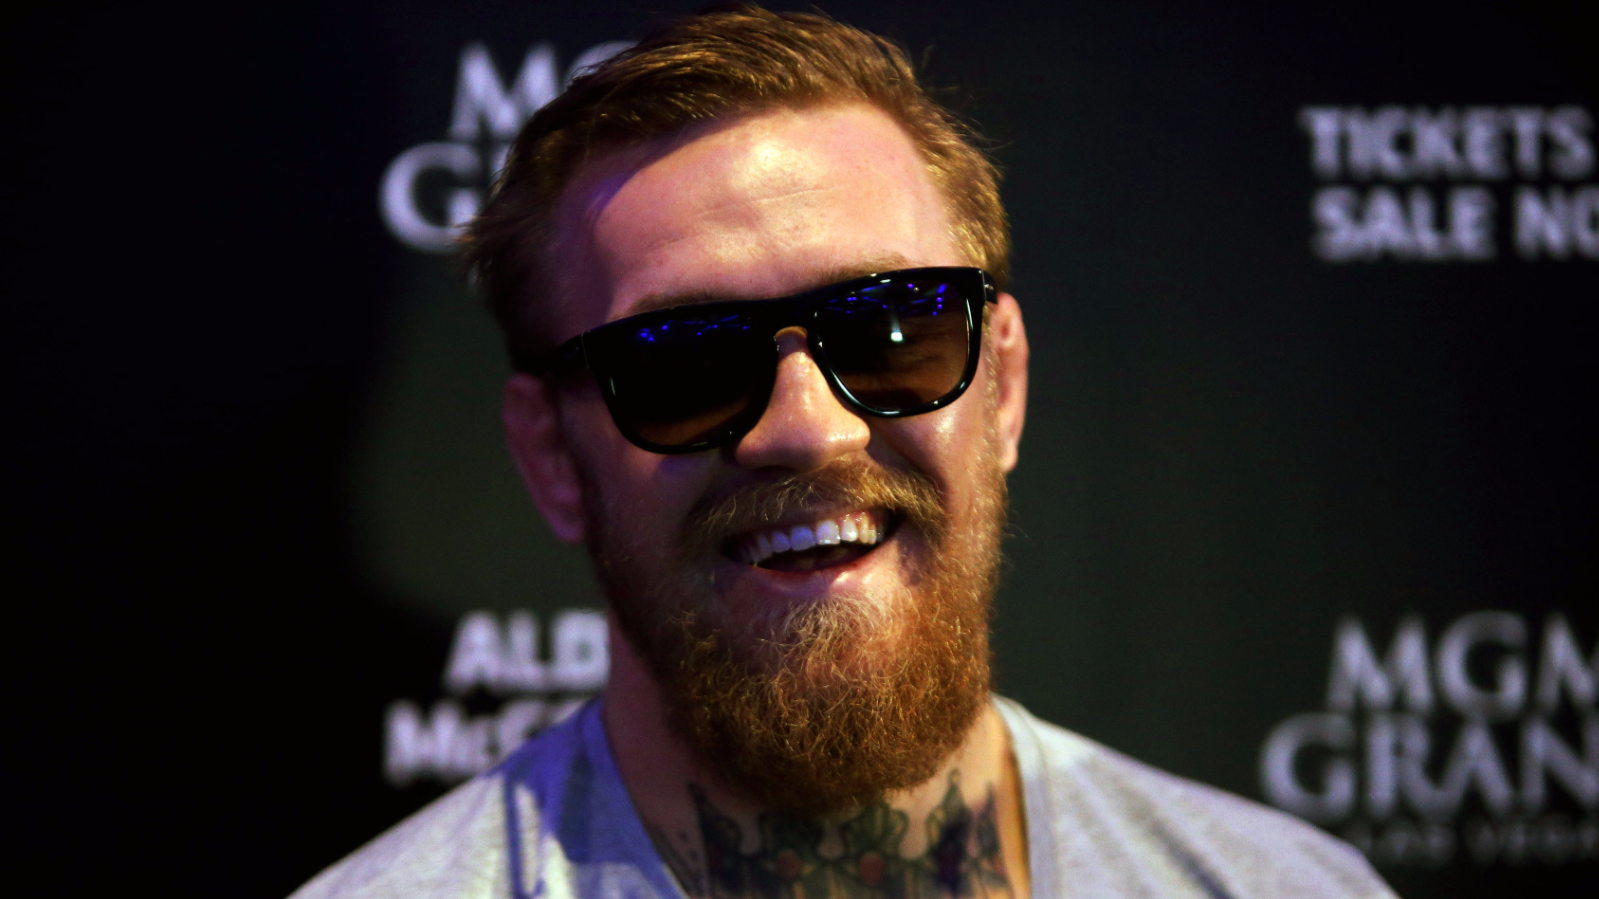 fe49bdcd4fa Conor McGregor Is Already Training His Son To Be A Boxer - SPORTbible